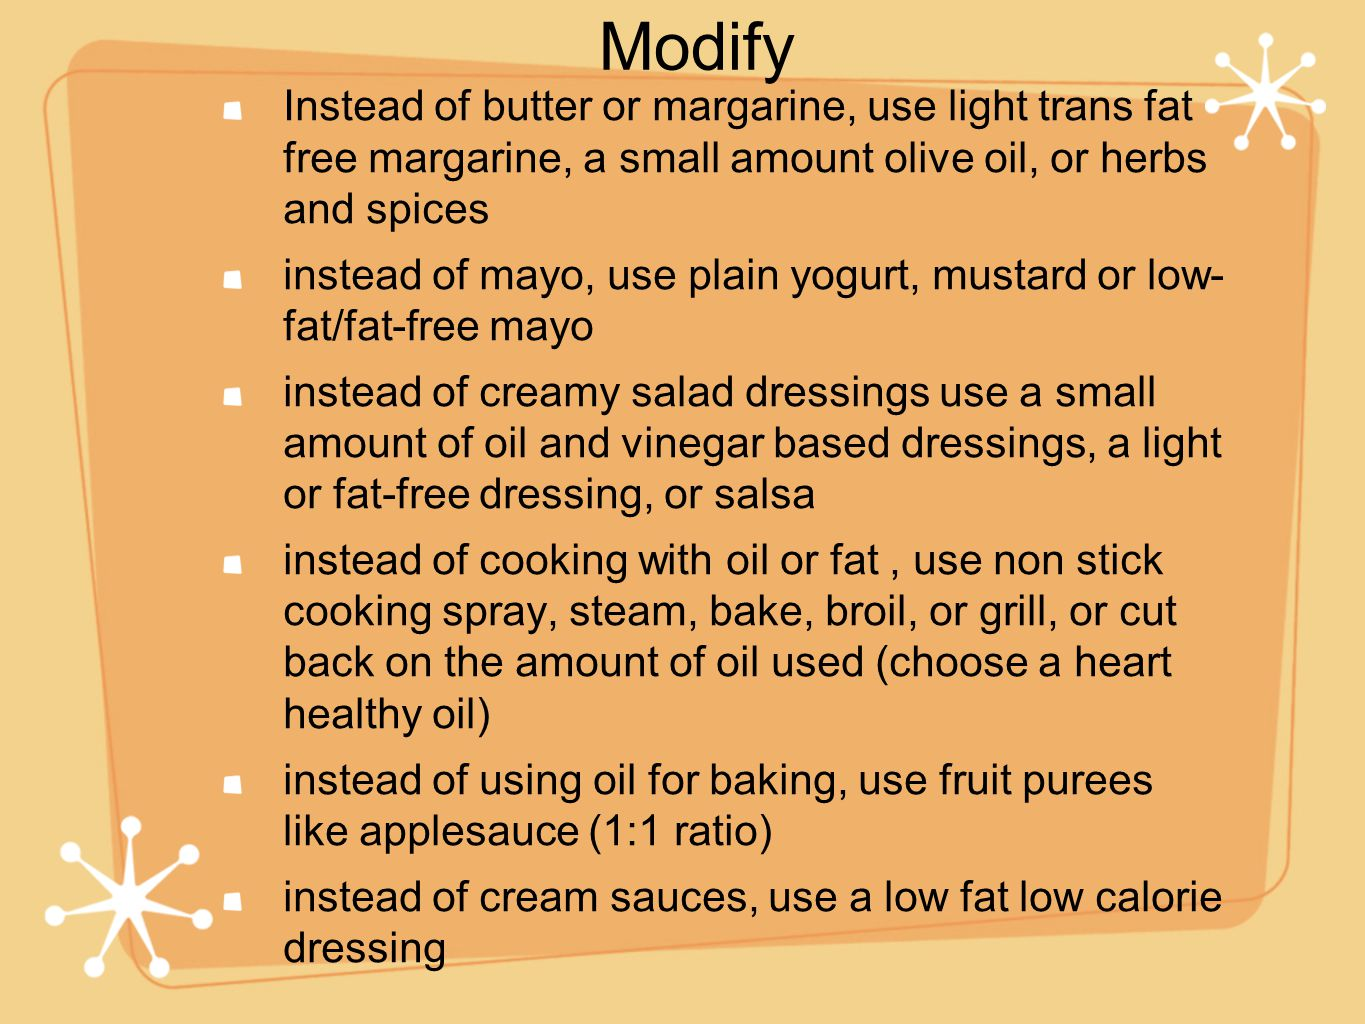 Instead of butter or margarine, use light trans fat free margarine, a small amount olive oil, or herbs and spices instead of mayo, use plain yogurt, mustard or low- fat/fat-free mayo instead of creamy salad dressings use a small amount of oil and vinegar based dressings, a light or fat-free dressing, or salsa instead of cooking with oil or fat, use non stick cooking spray, steam, bake, broil, or grill, or cut back on the amount of oil used (choose a heart healthy oil) instead of using oil for baking, use fruit purees like applesauce (1:1 ratio) instead of cream sauces, use a low fat low calorie dressing Modify